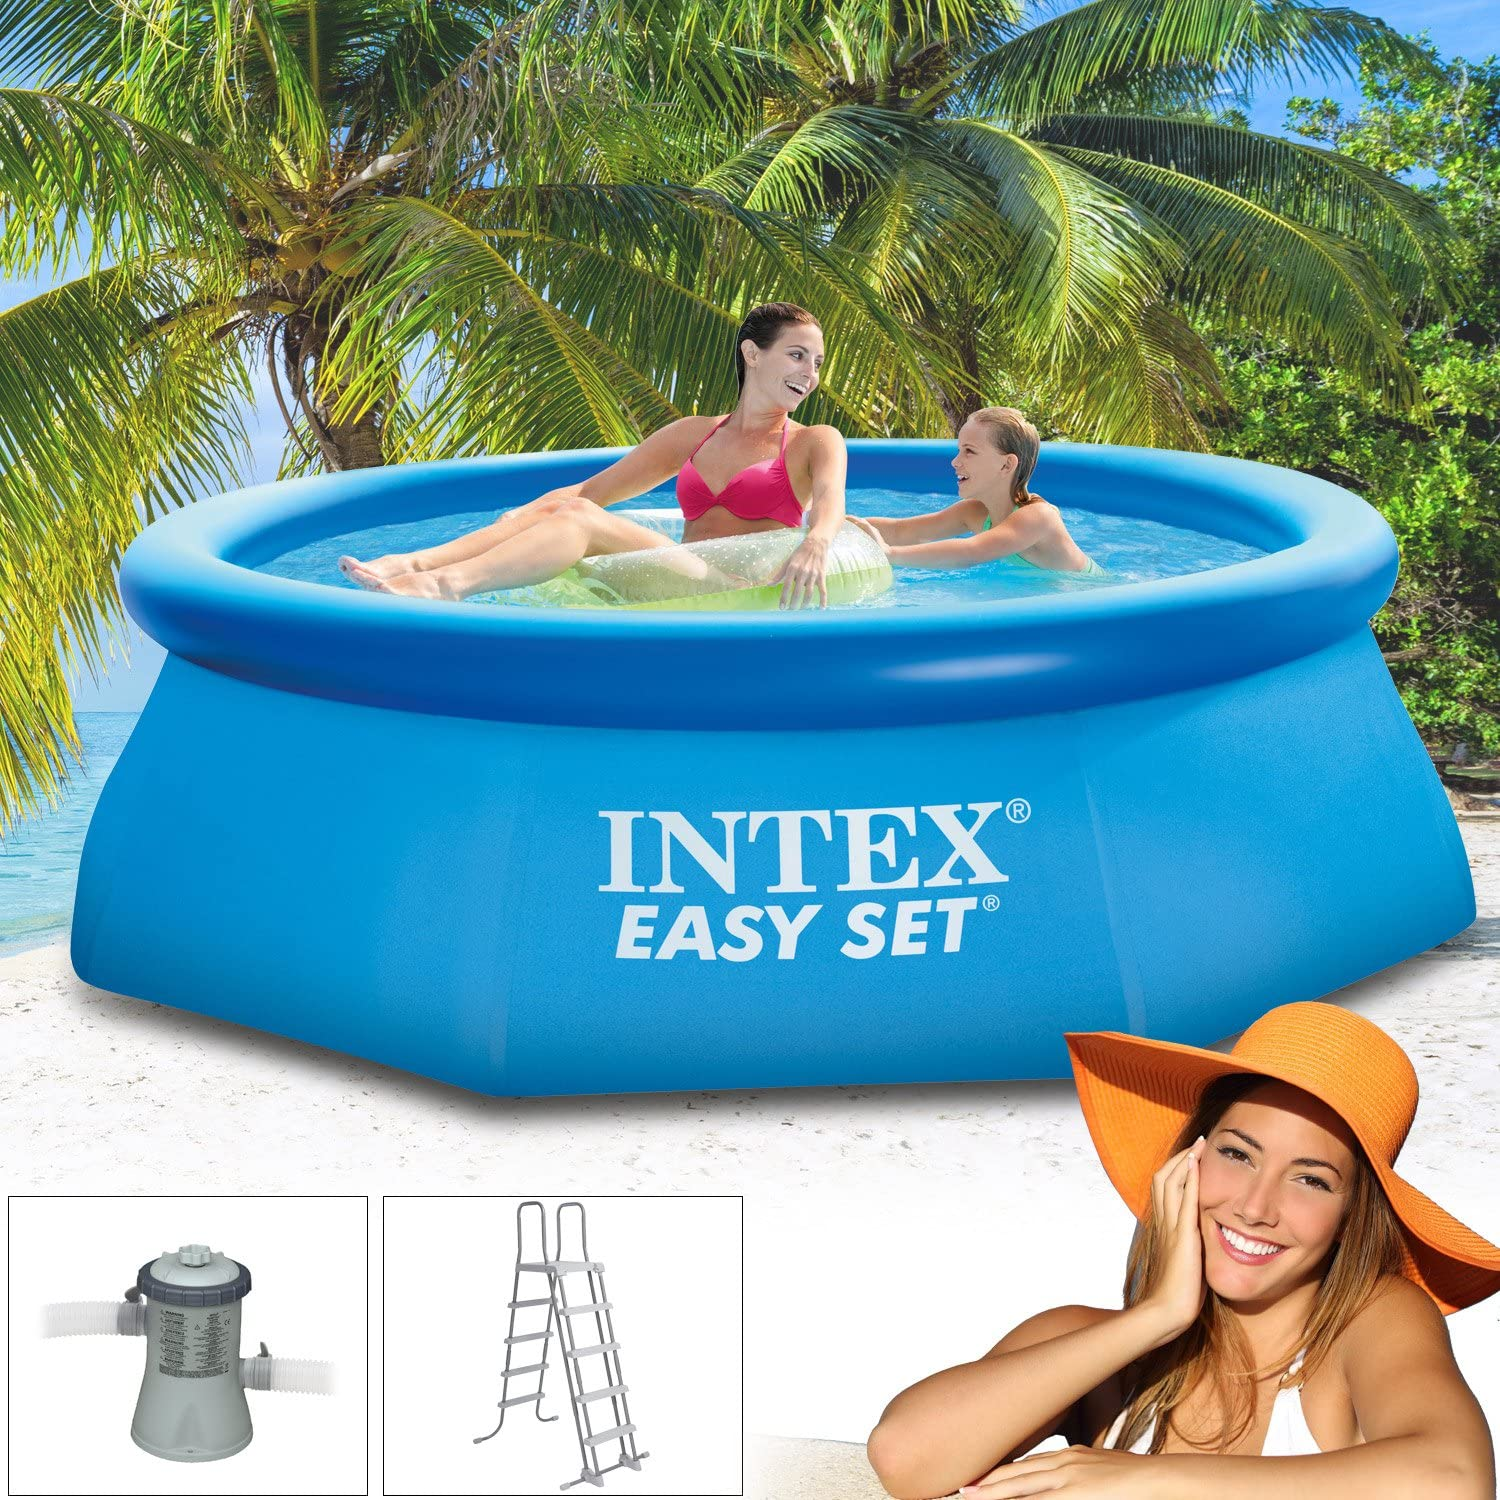 Intex 305 x 91 cm Easy Set con piscina incl. Bomba de filtro 2271 ...